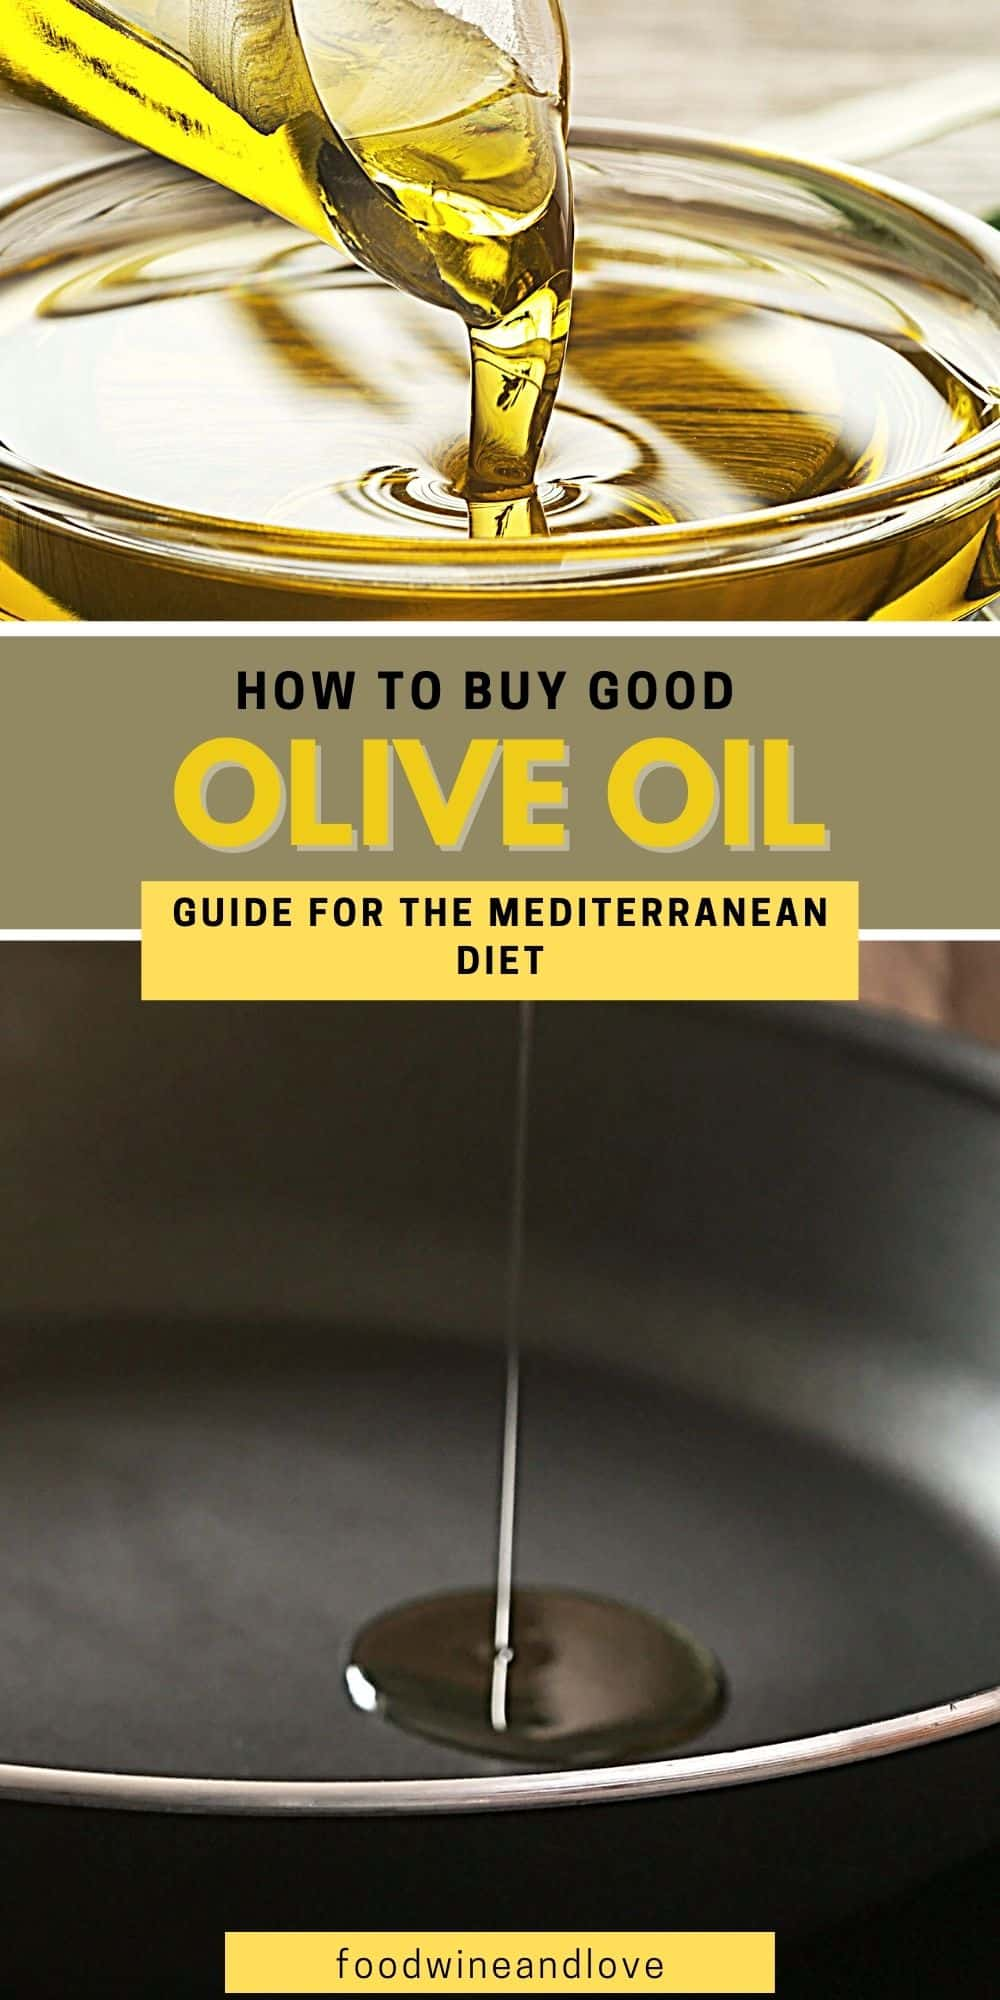 How to Buy Good Olive Oil